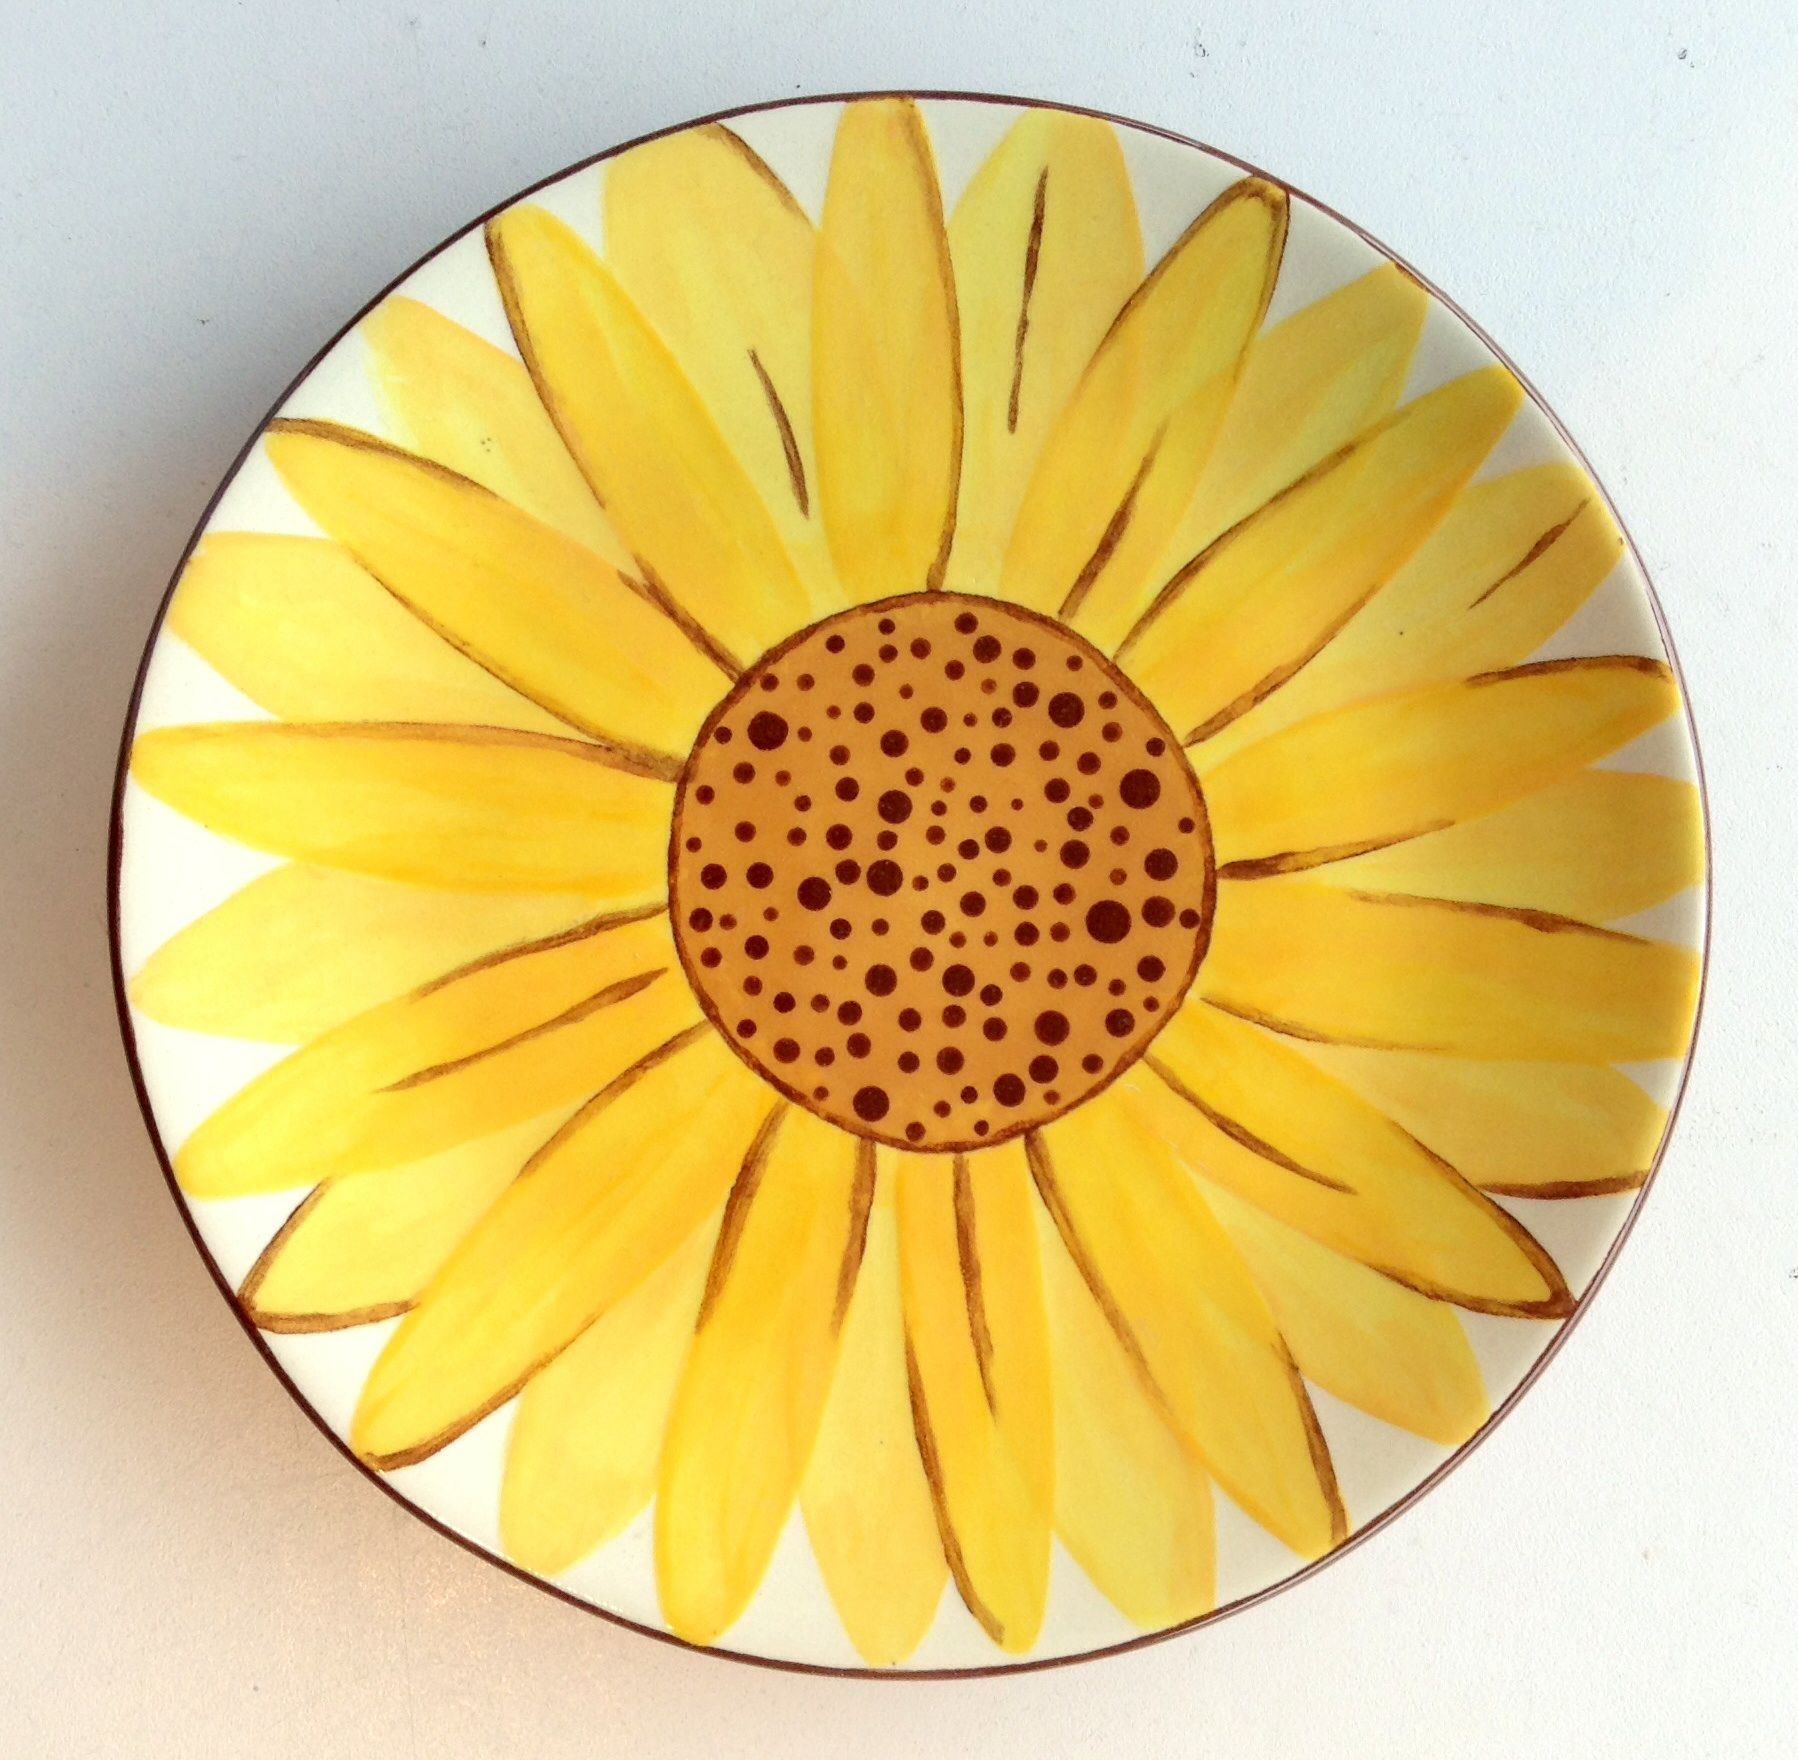 Sunflower Plate | Paint Your Own Pottery | Paint Your Pot | Cary North Carolina  sc 1 st  Pinterest & Sunflower Plate | Paint Your Own Pottery | Paint Your Pot | Cary ...